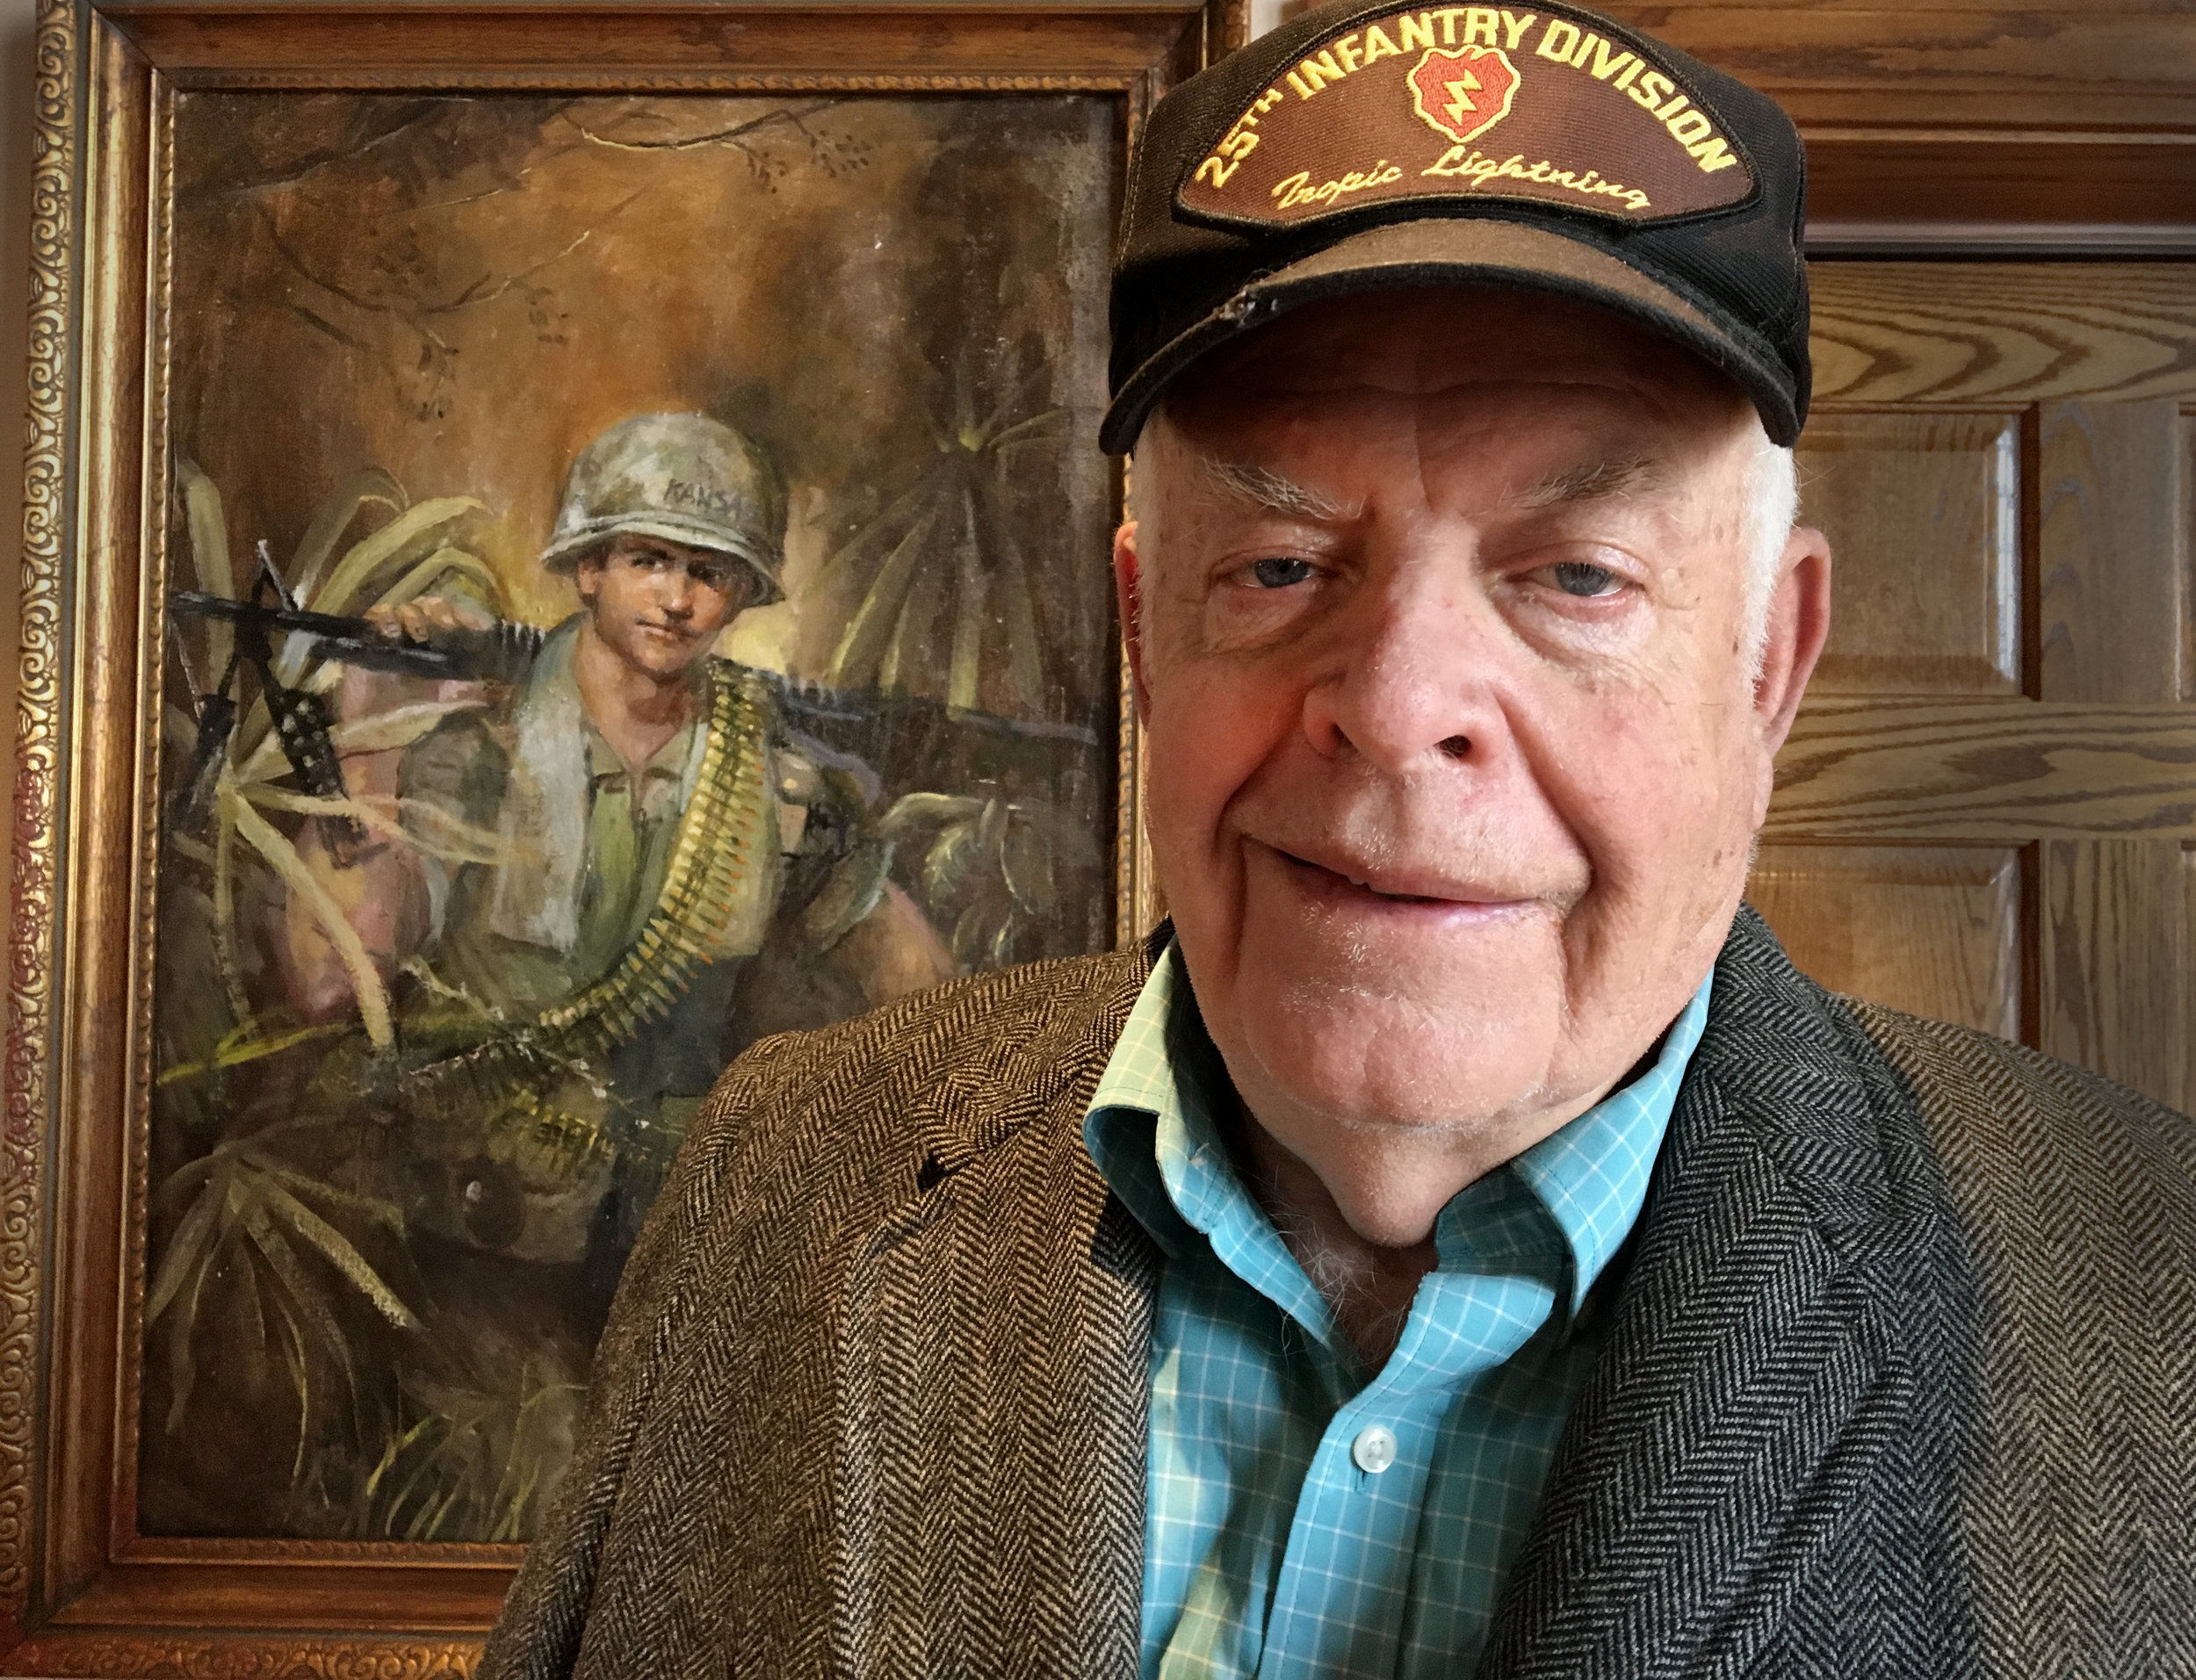 Jim Nelson with one of his original paintings, currently on display at Missouri's National Veteran's Memorial. Photo: Sean Loftin